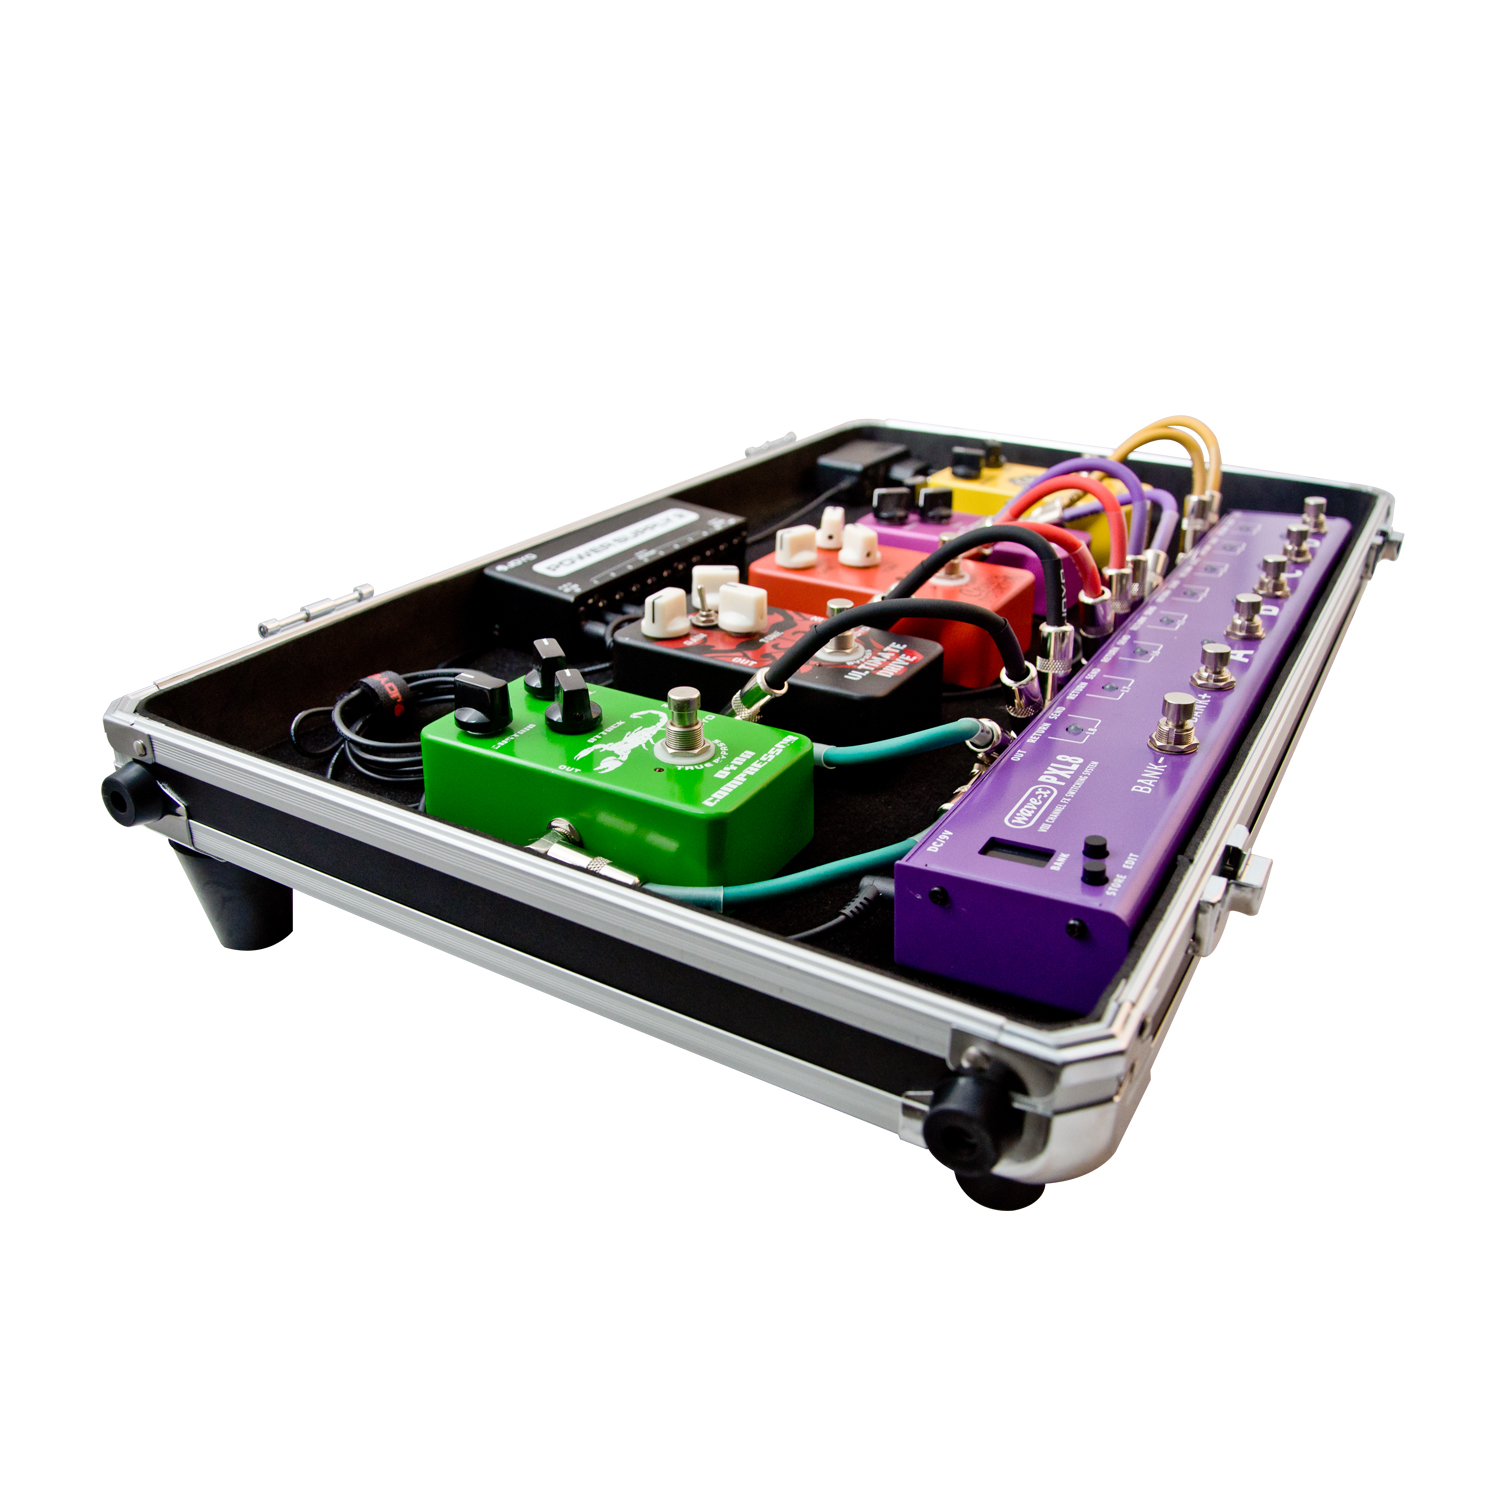 [JOYO-RD-3-Coupe-Driver-RockDriver-Series-Pedal-Board-Flight-Trolley-Case]